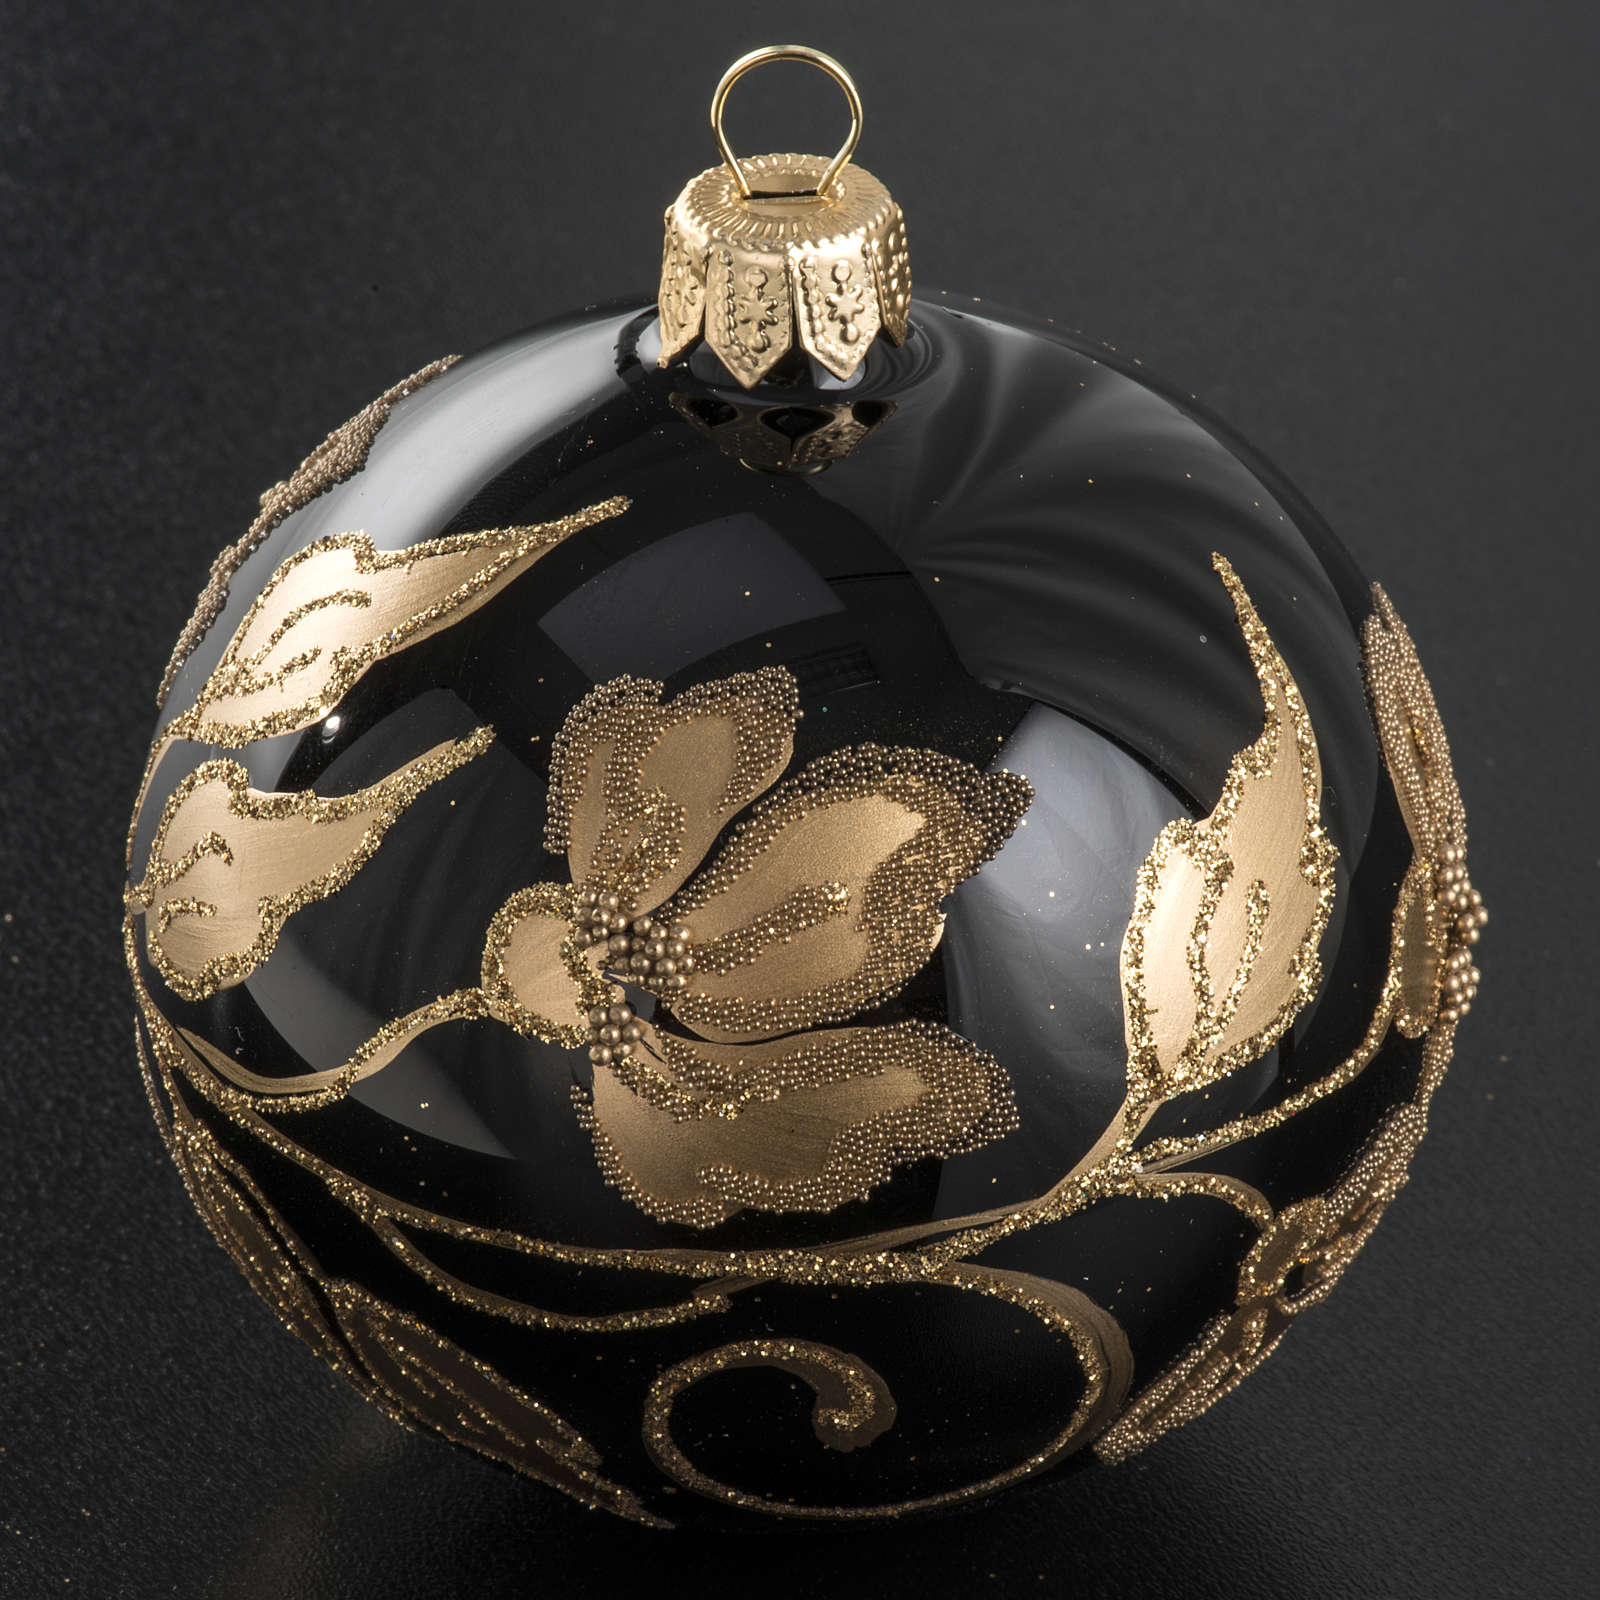 Christmas bauble, black glass with gold floral decorations, 8cm 4